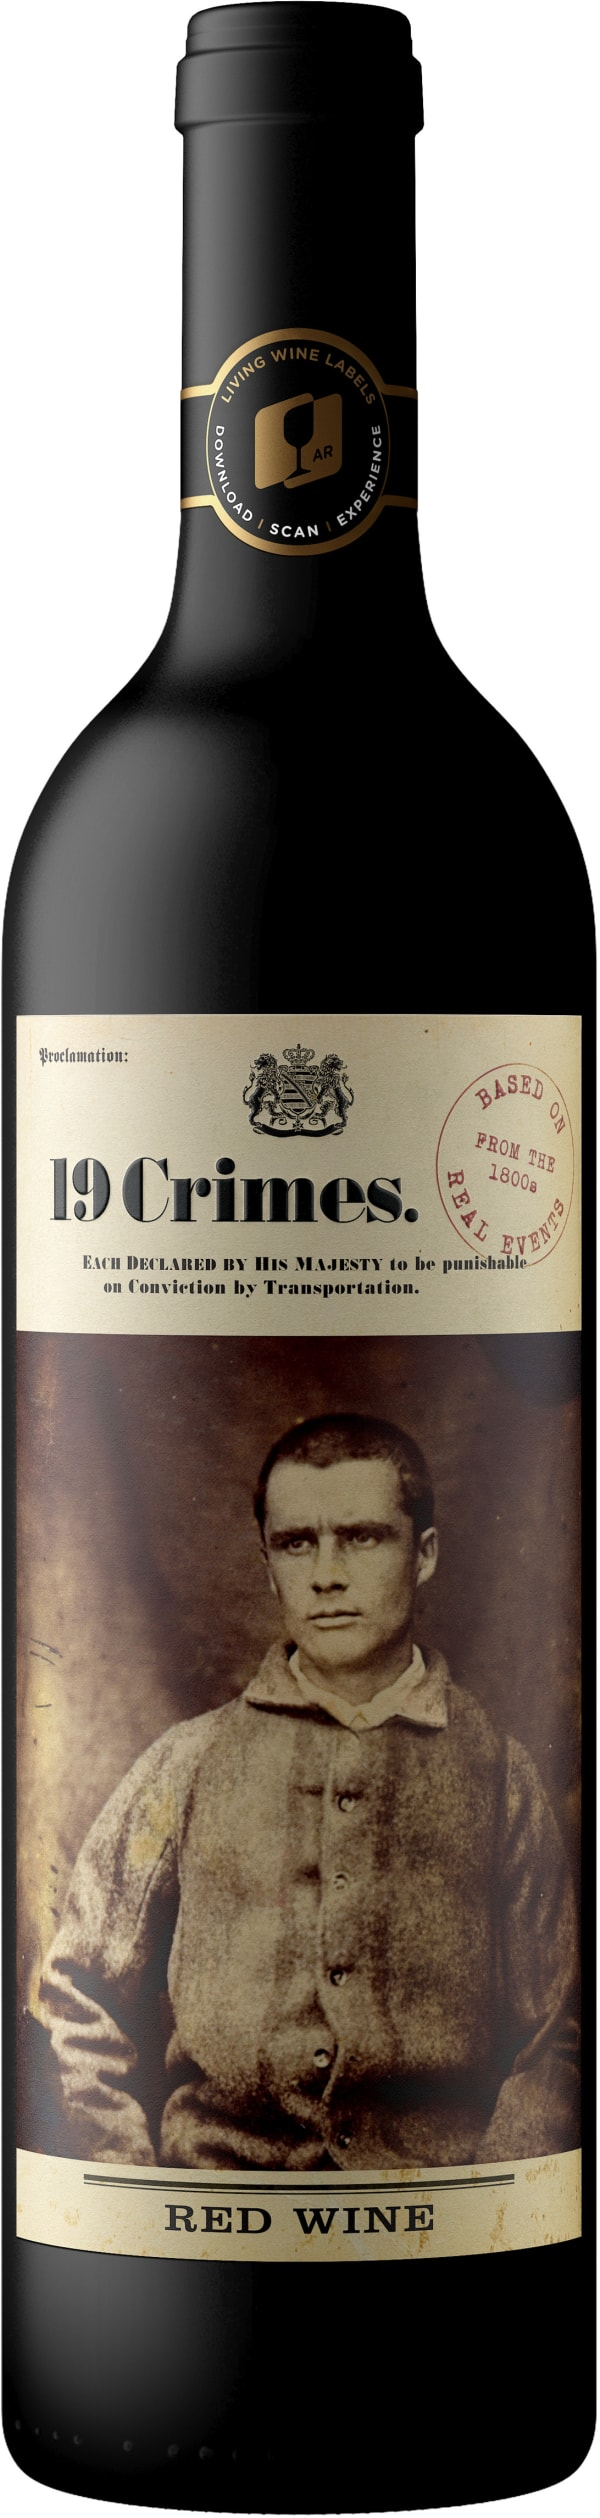 19 Crimes Red wine 2018